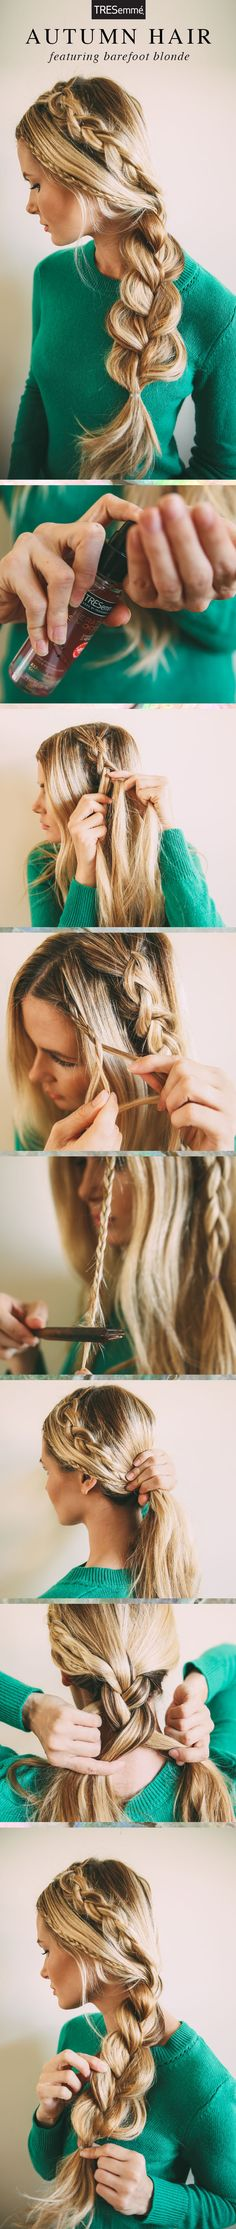 Connoisseur of braids, @amberlfillerup shows us a triple-braid autumn look (because two braids just aren't enough).